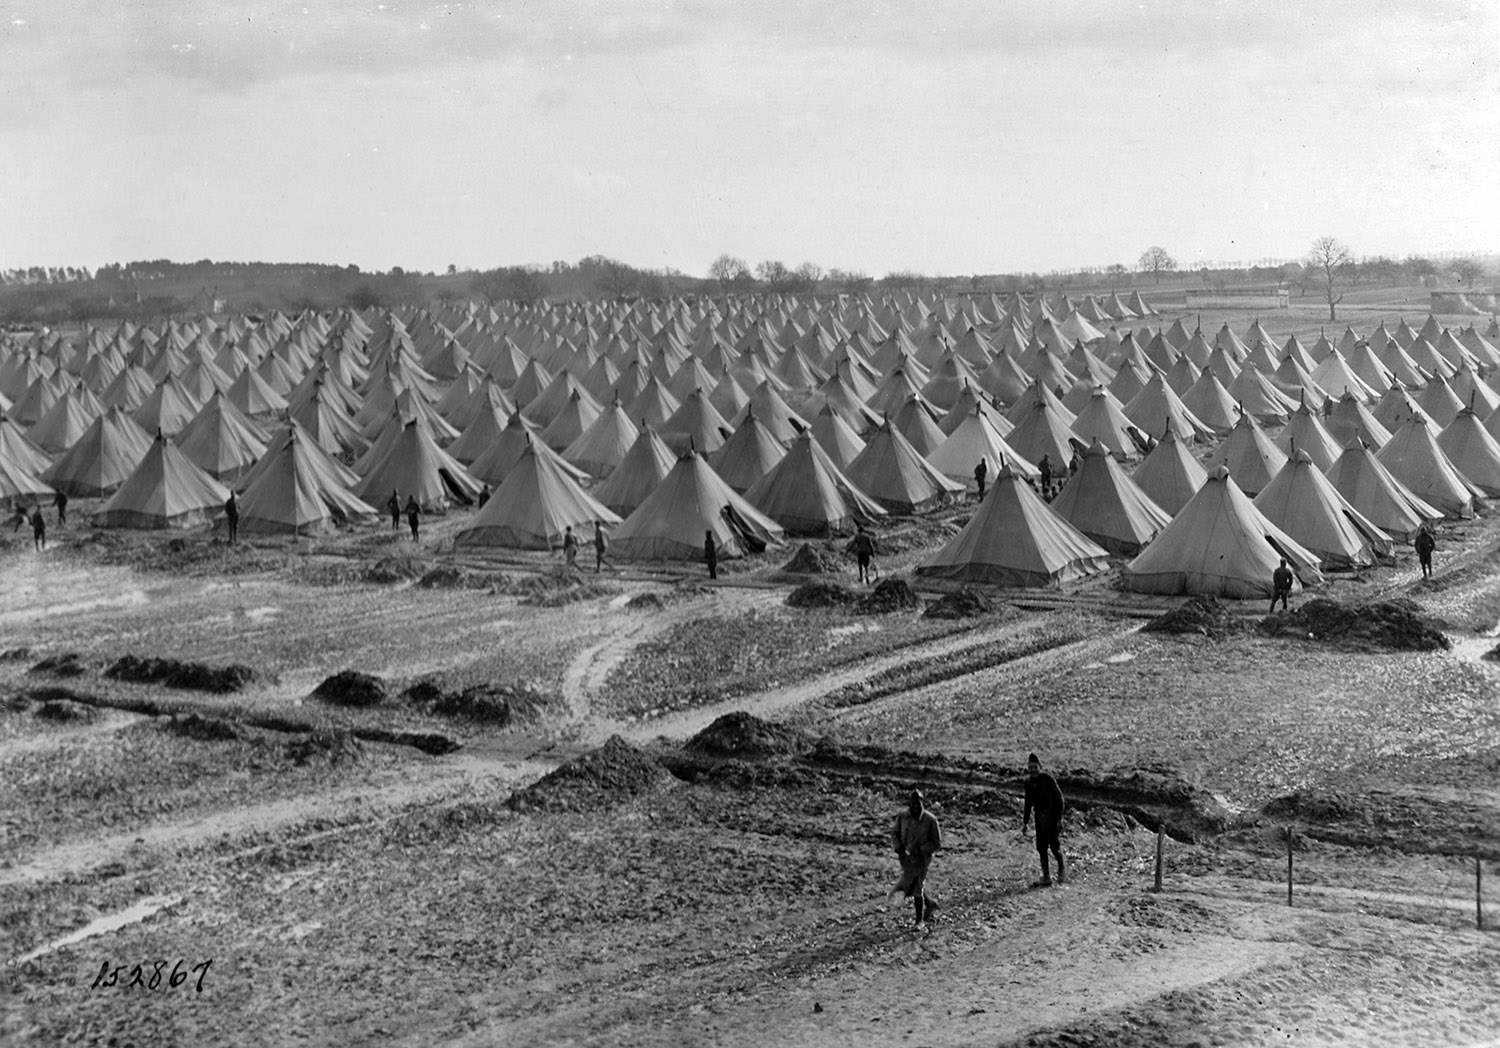 Camp Américain de Noyers-St-Aignan (Photo Google).